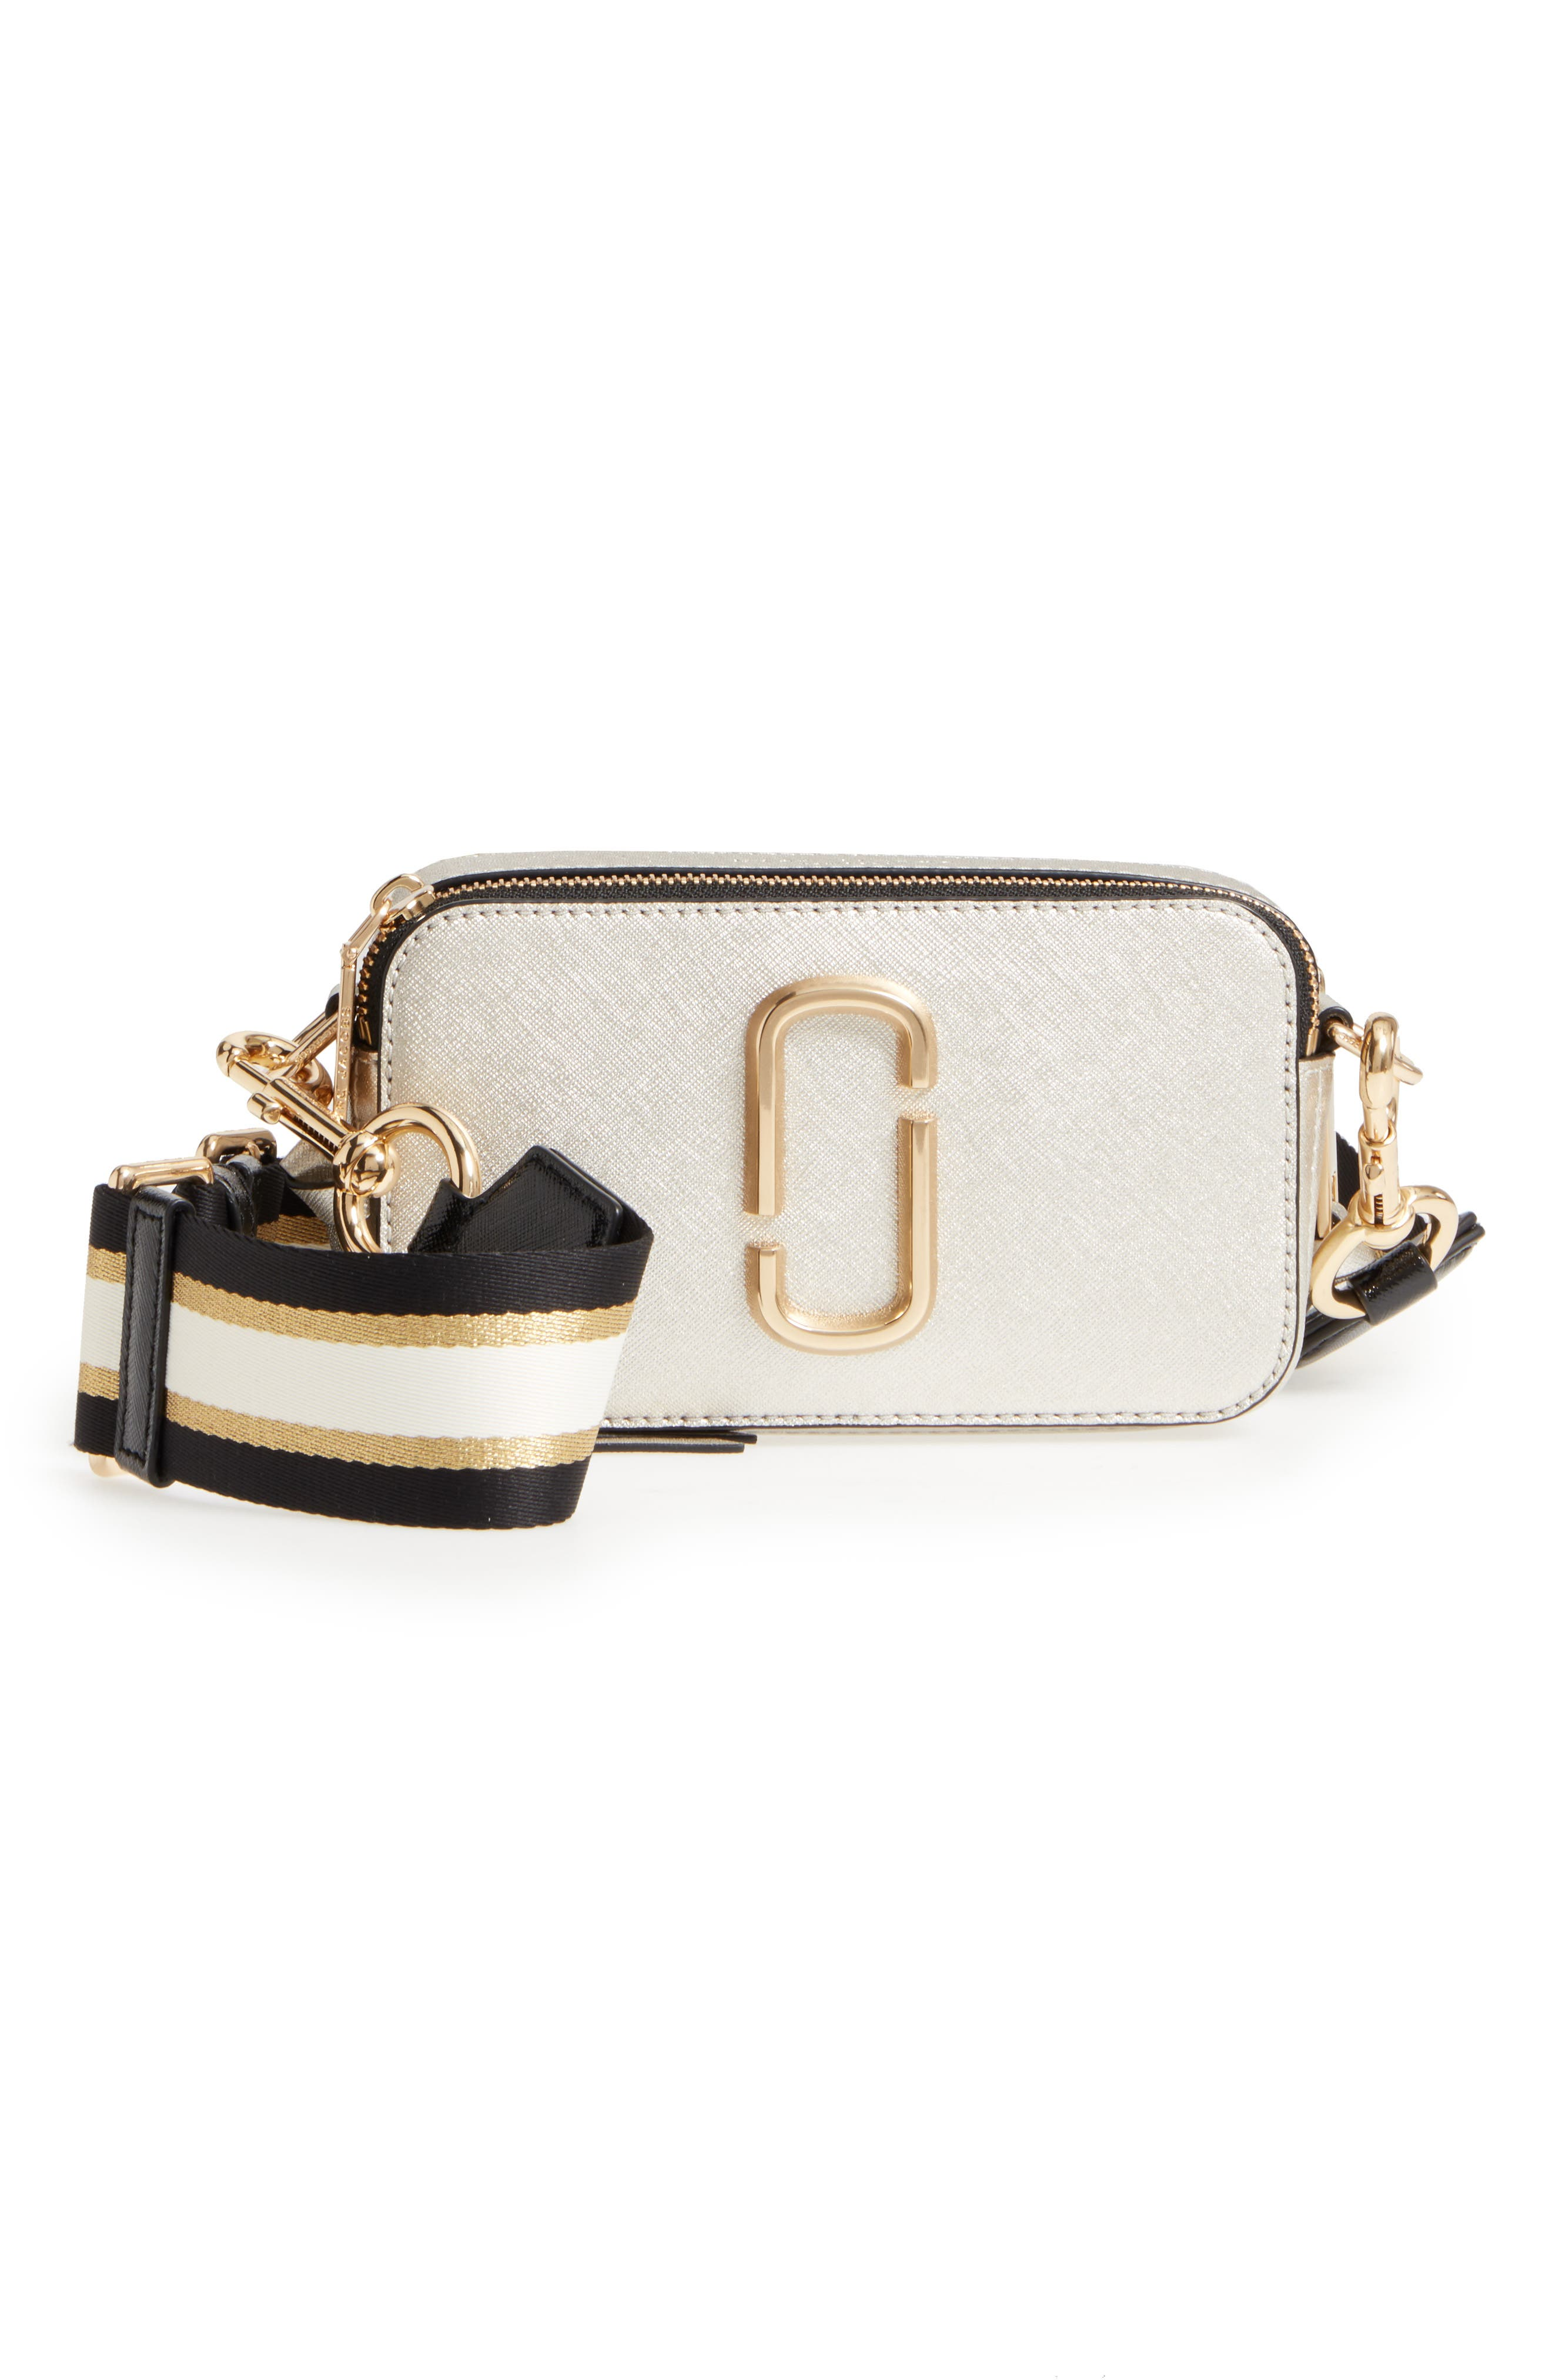 Alternate Image 1 Selected - MARC JACOBS Snapshot Leather Crossbody Bag